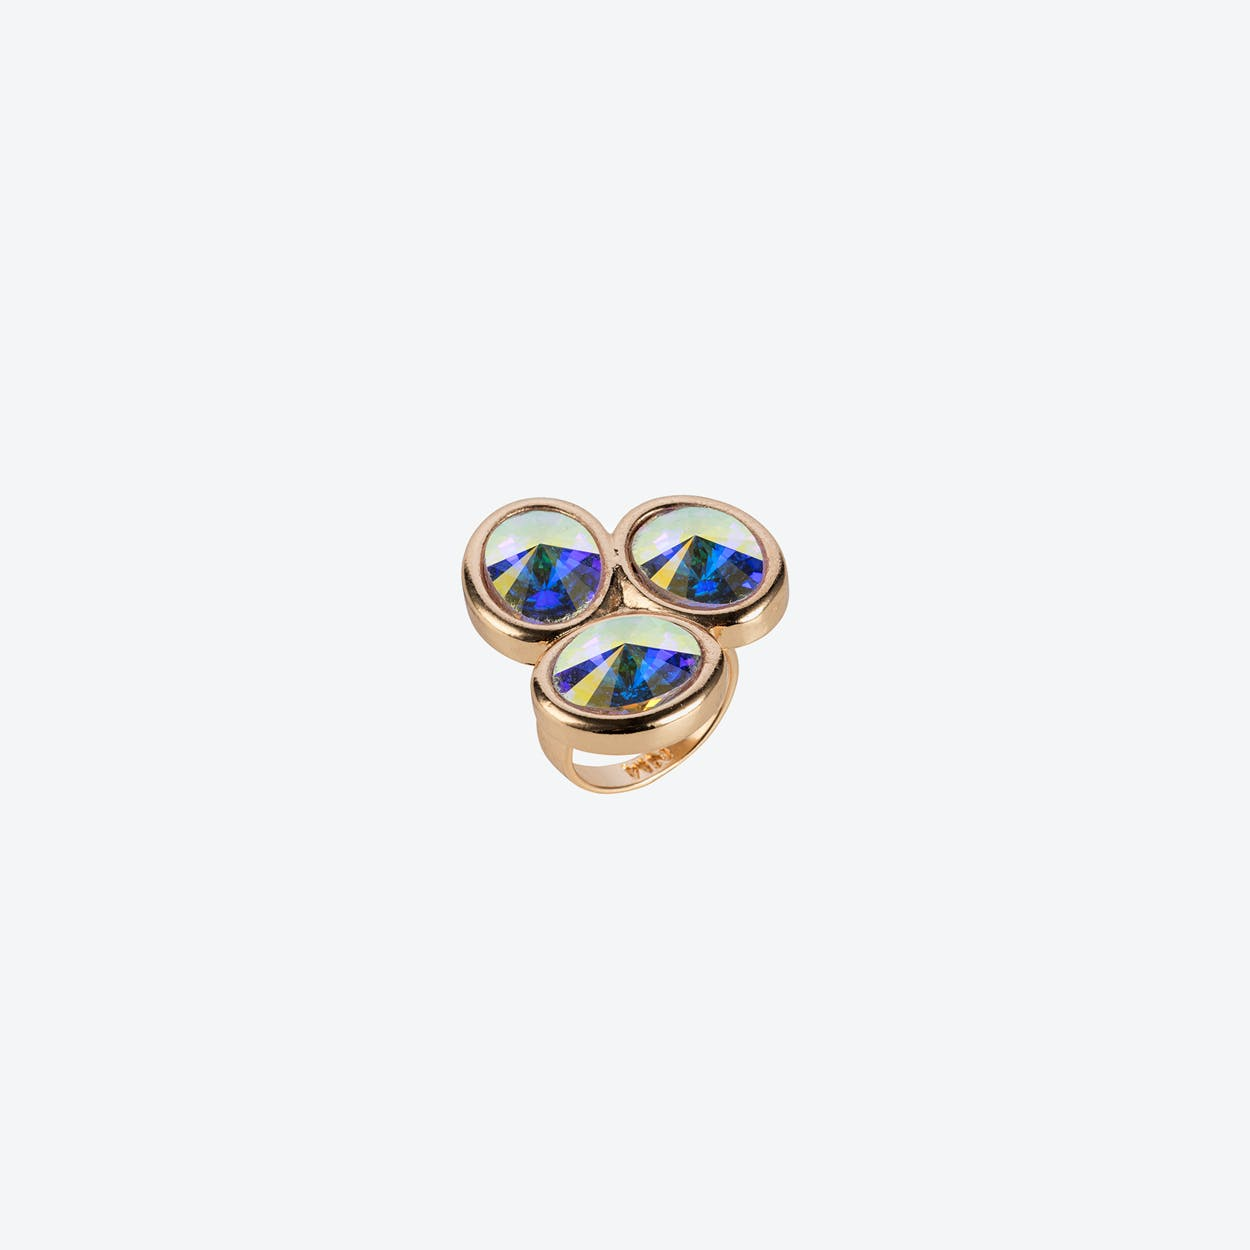 Triple Stone Oval Ring in Gold & Crystal